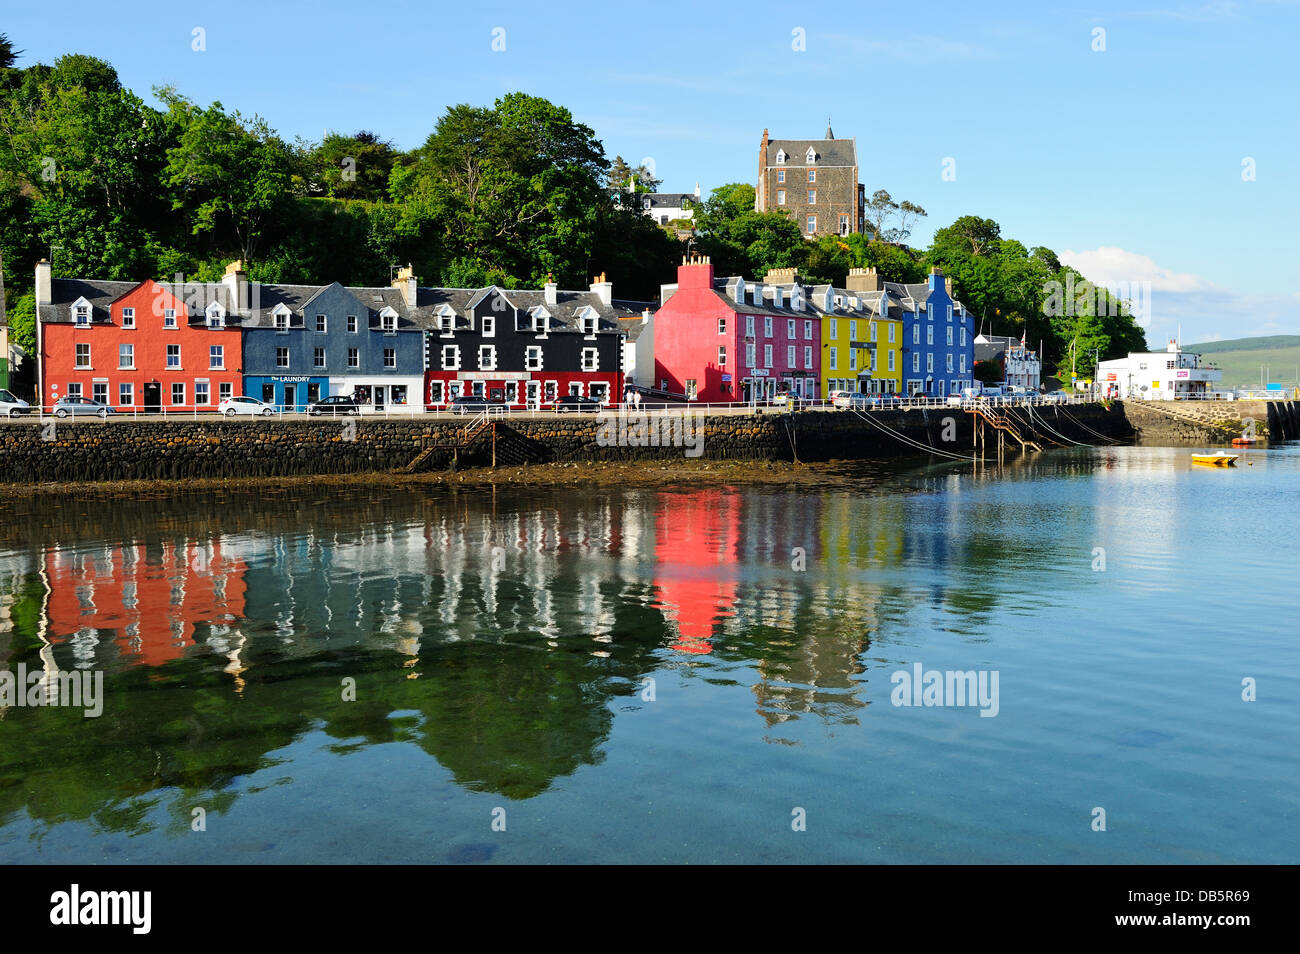 Picturesque town of Tobermory on Island of Mull, Scotland - Stock Image